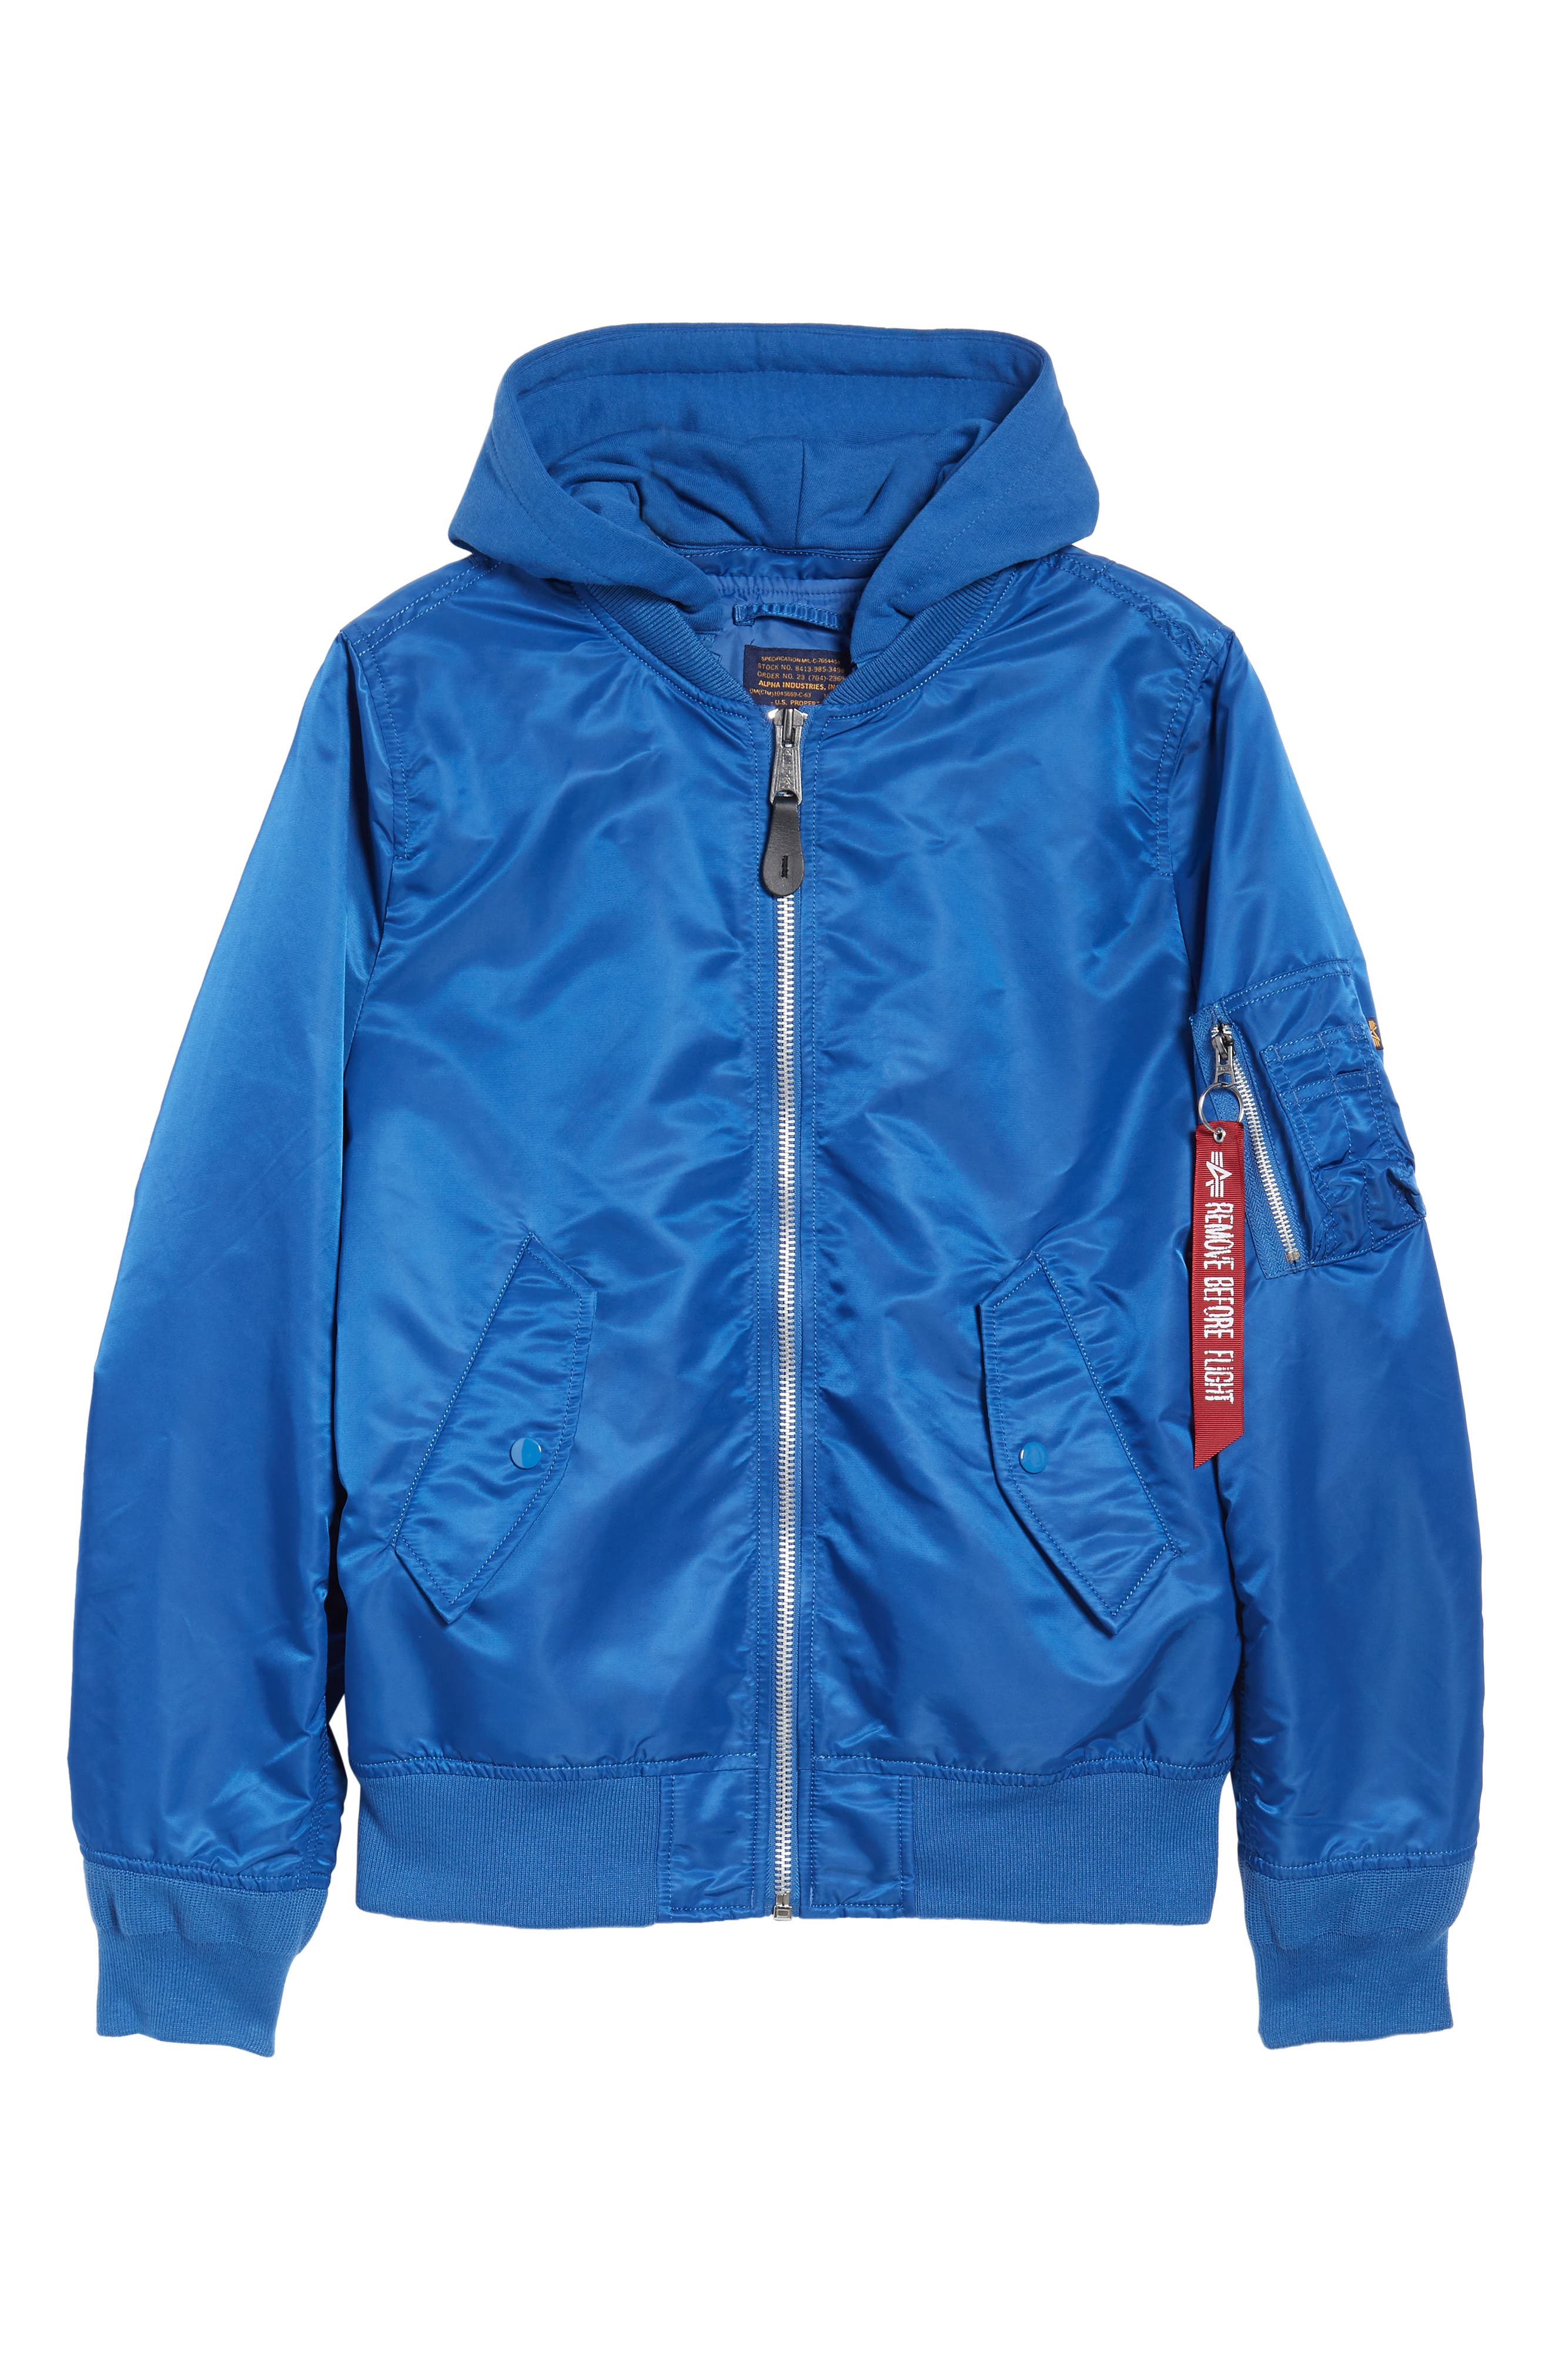 L-2B Natus Water Resistant Flight Jacket,                             Alternate thumbnail 6, color,                             Pacific Blue